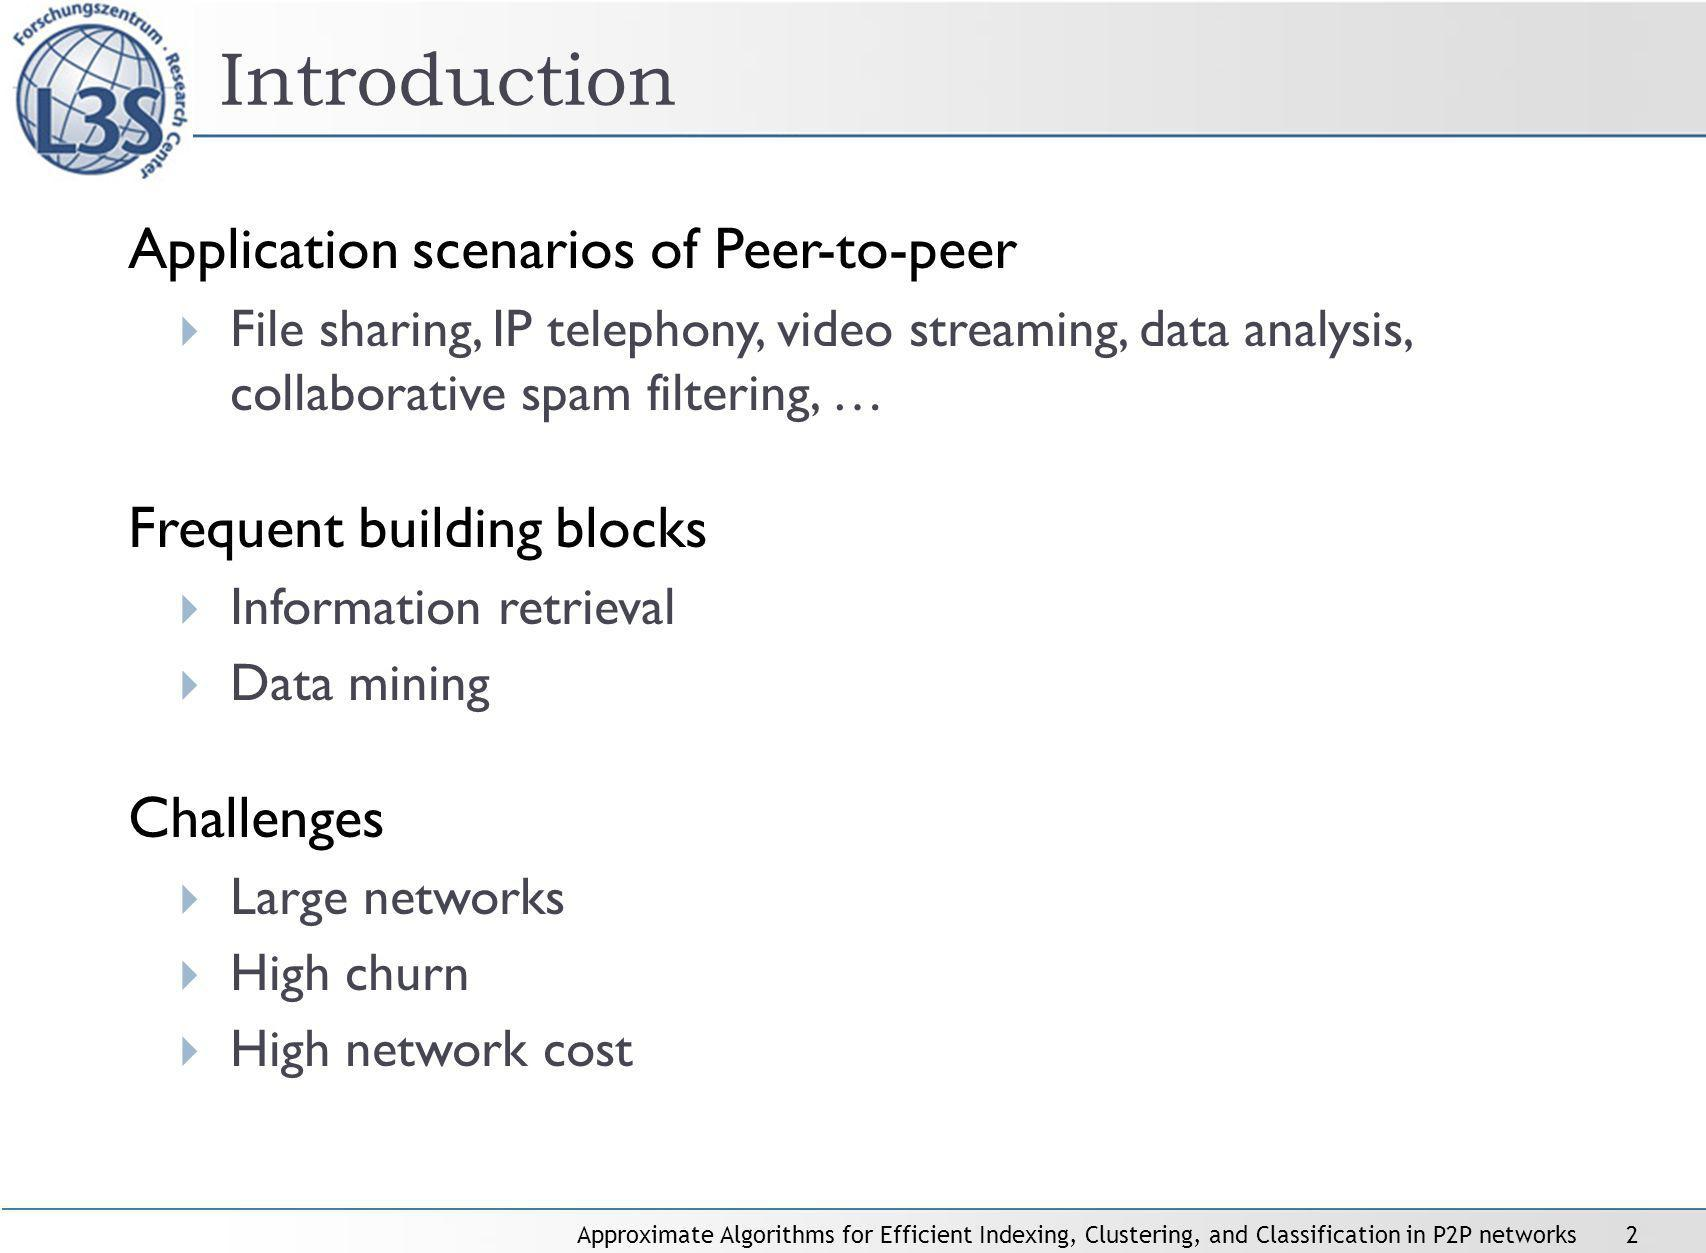 Approximate Algorithms for Efficient Indexing, Clustering, and Classification in P2P networks2 Application scenarios of Peer-to-peer File sharing, IP telephony, video streaming, data analysis, collaborative spam filtering, … Frequent building blocks Information retrieval Data mining Challenges Large networks High churn High network cost Introduction